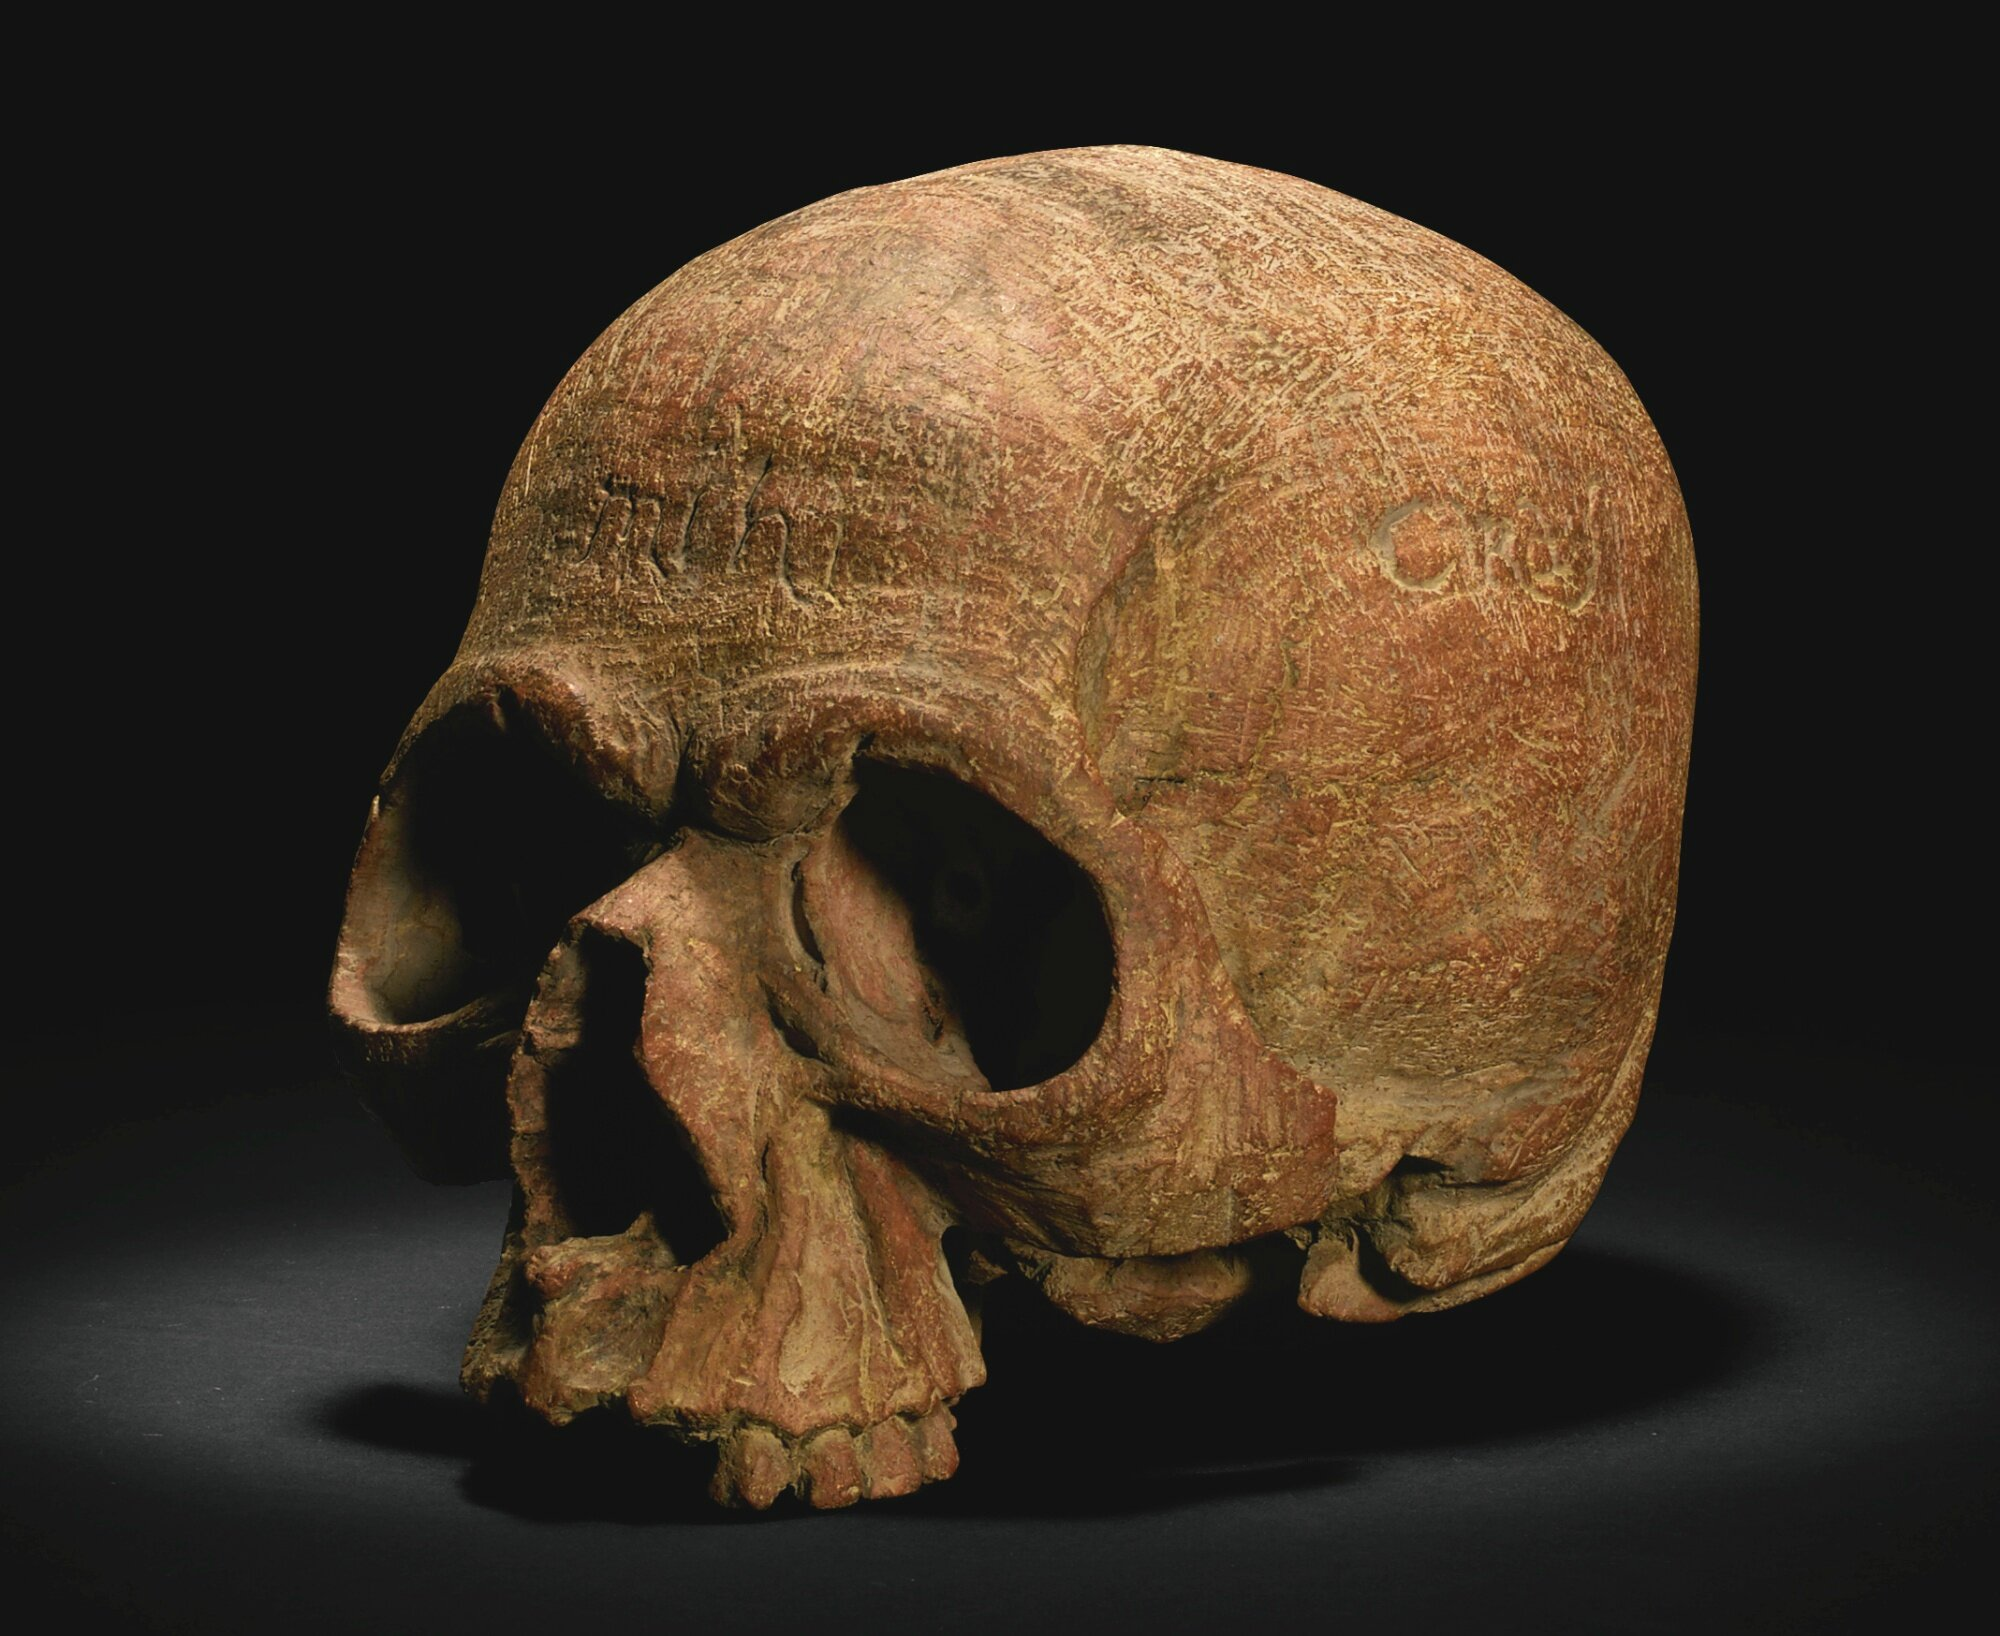 Netherlandish or Italian, probably 17th century, Memento mori skull